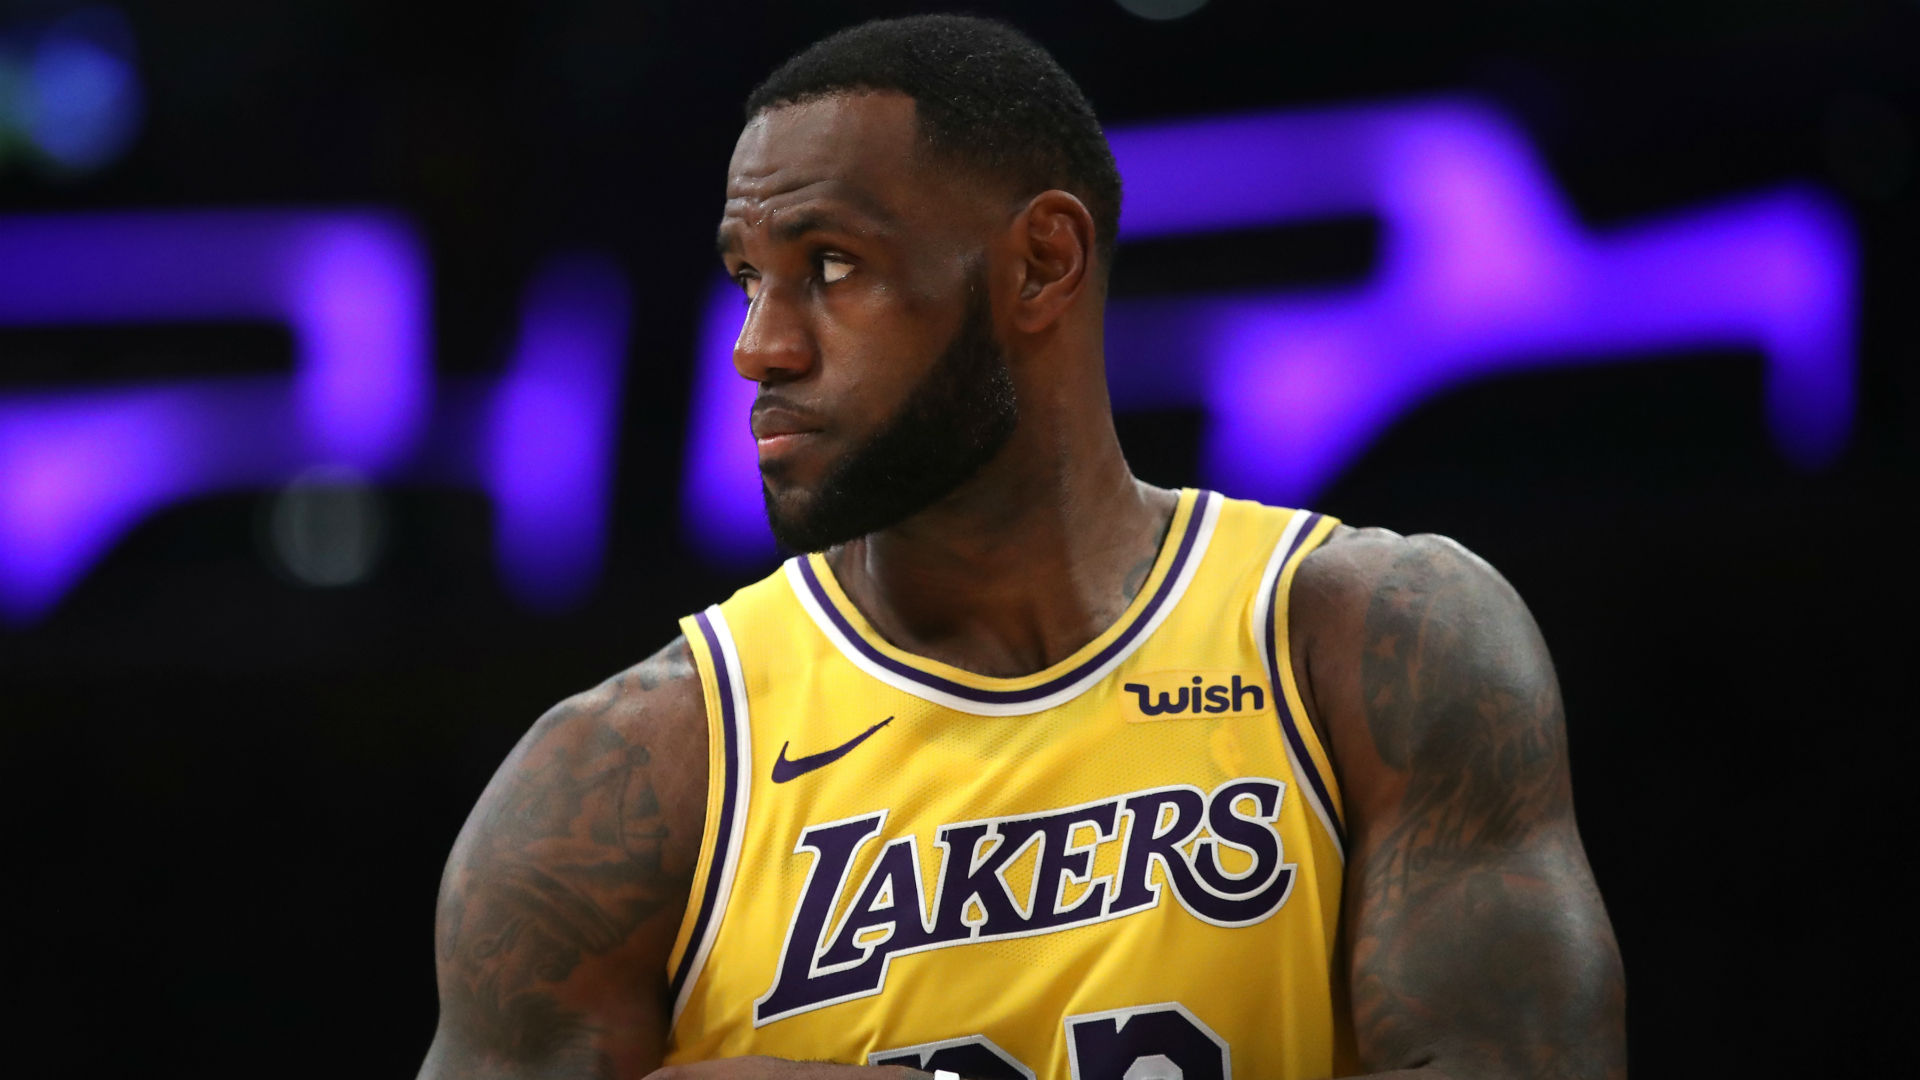 LeBron James is 'no Michael Jordan,' says Skip Bayless